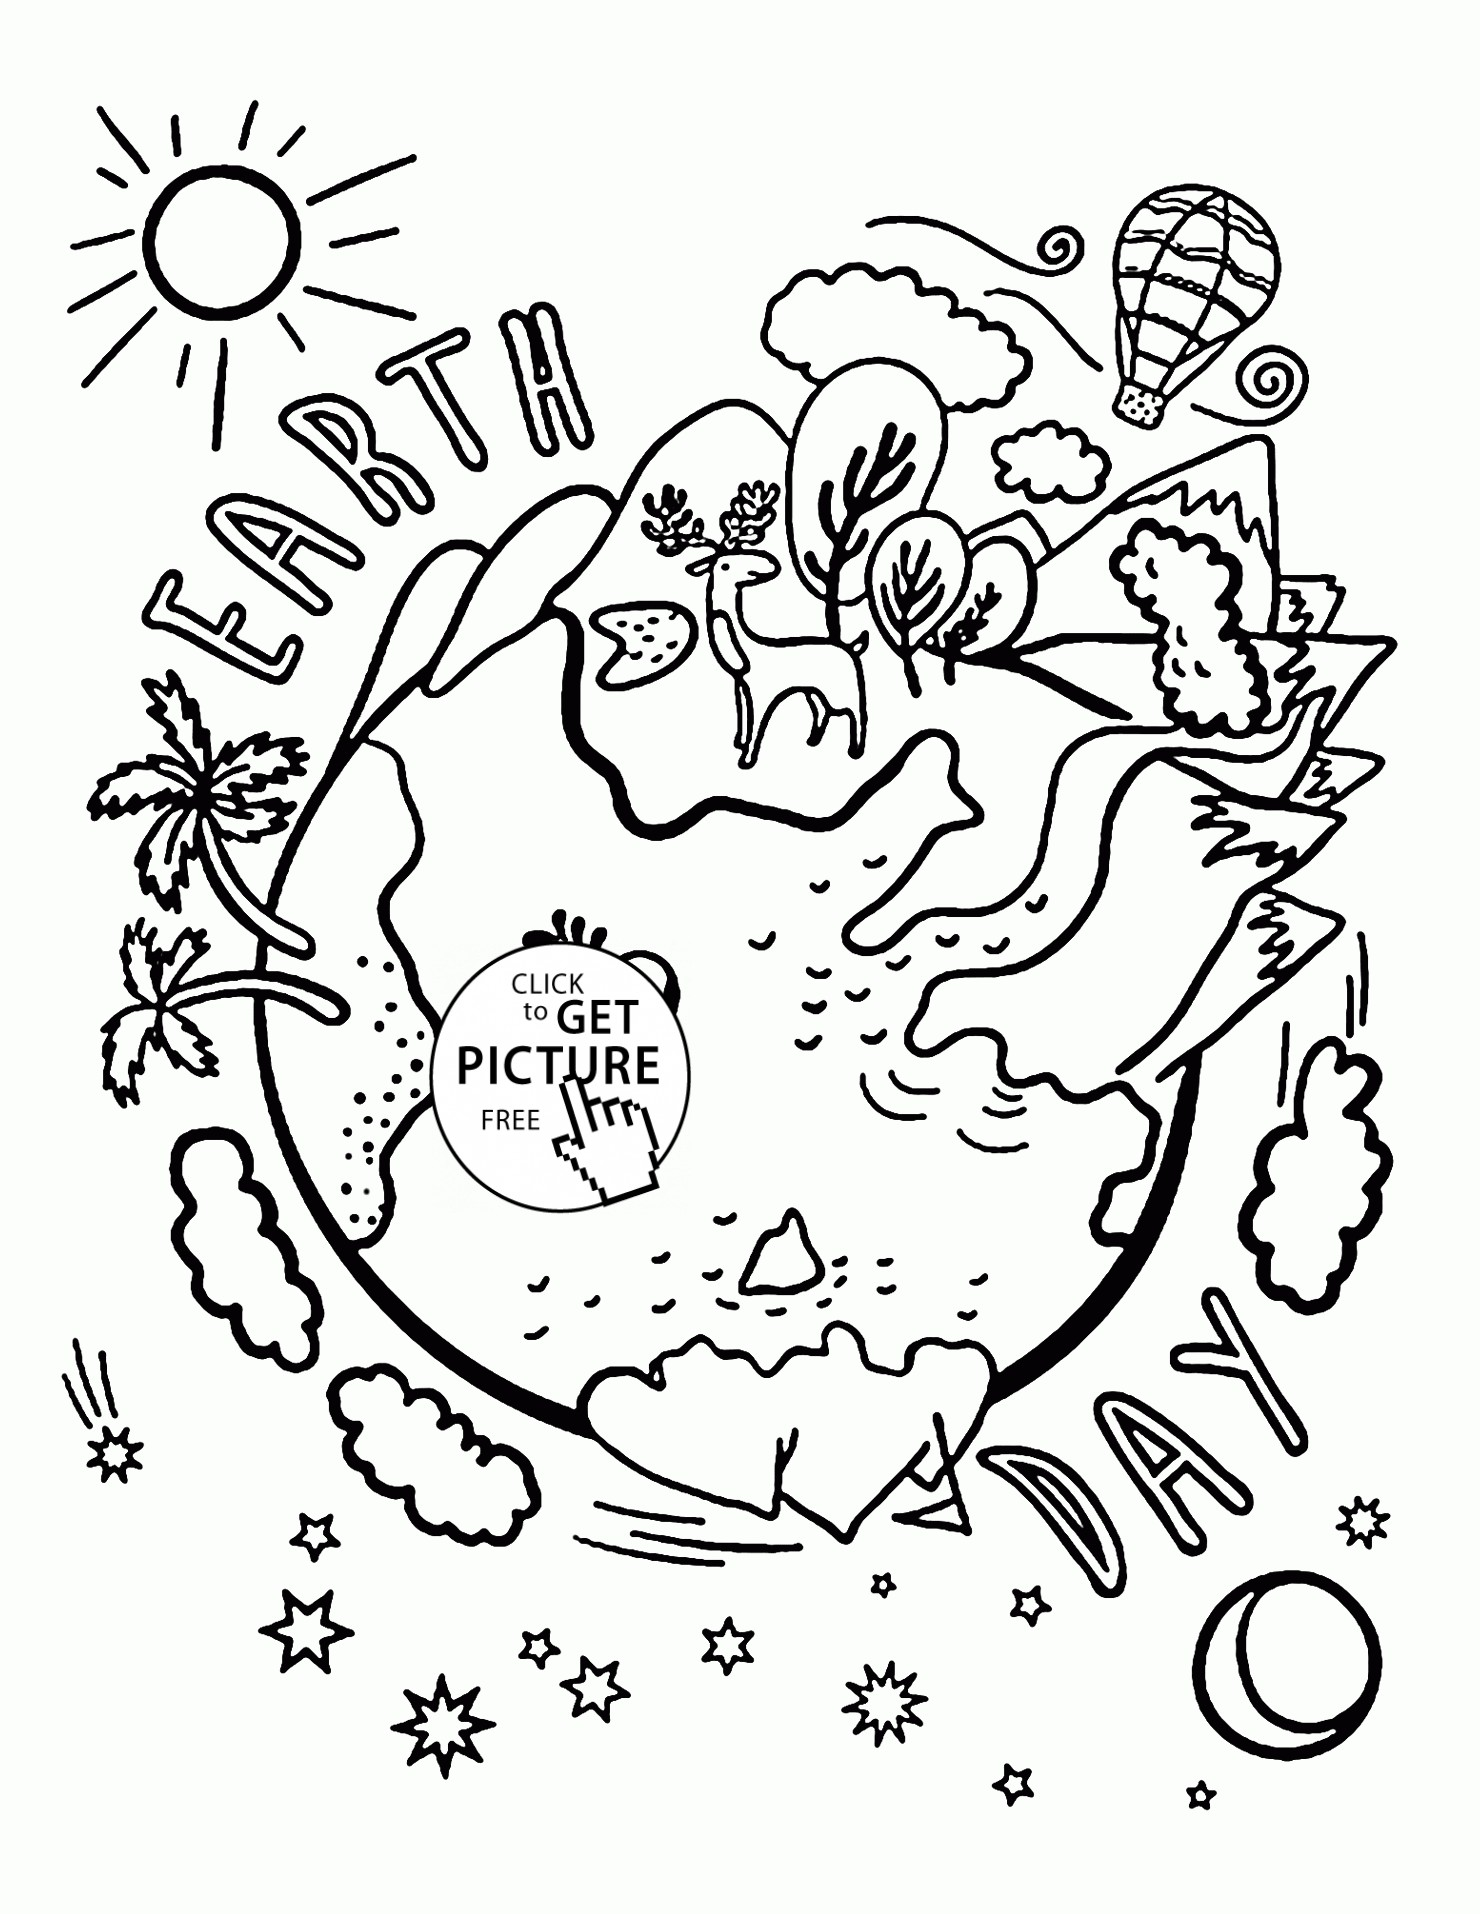 Earth Day Drawing Contest At Getdrawings